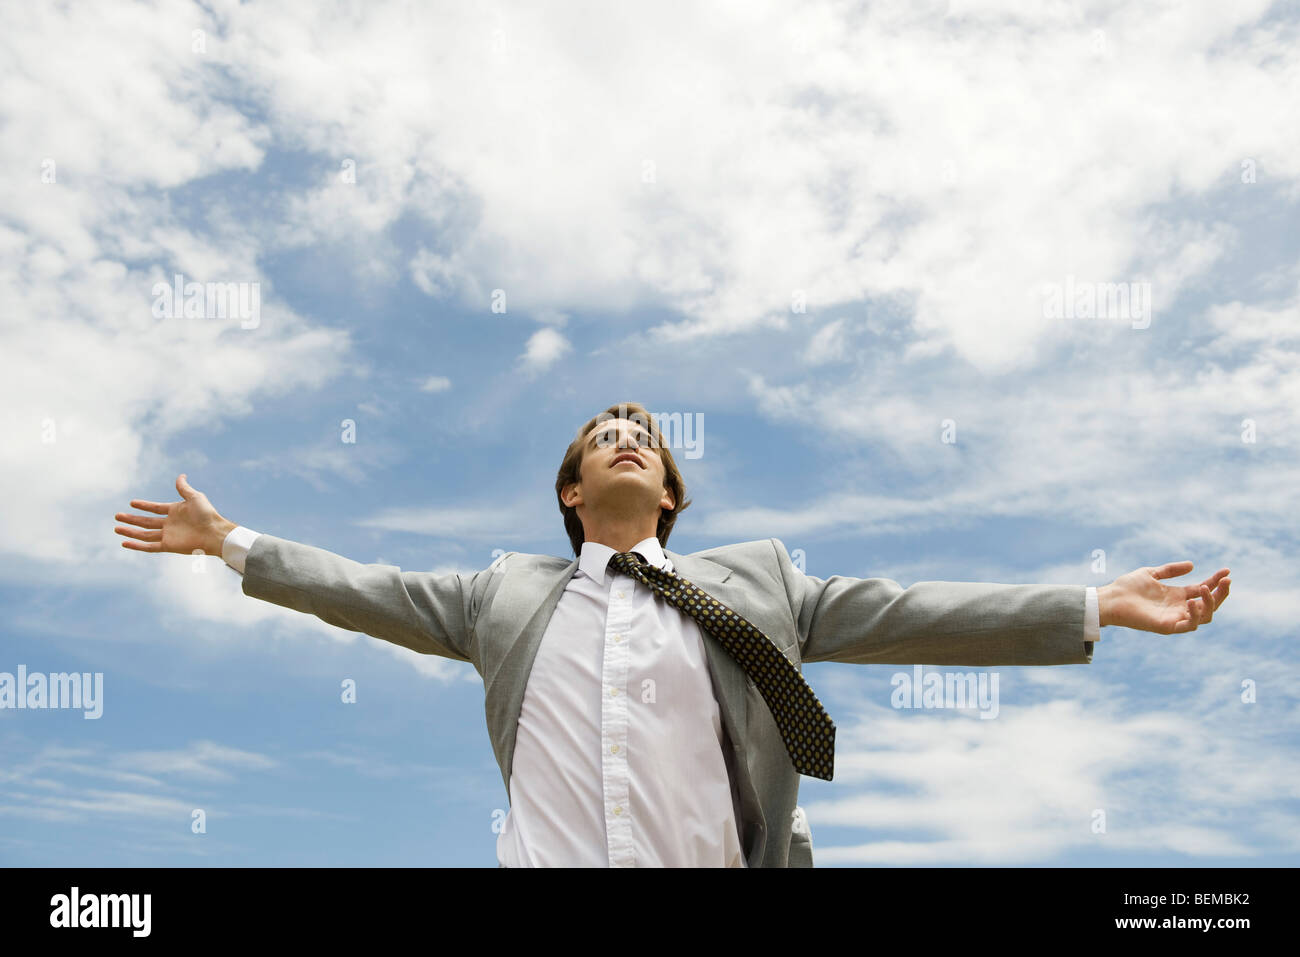 Businessman with arms outstretched contre ciel nuageux Photo Stock